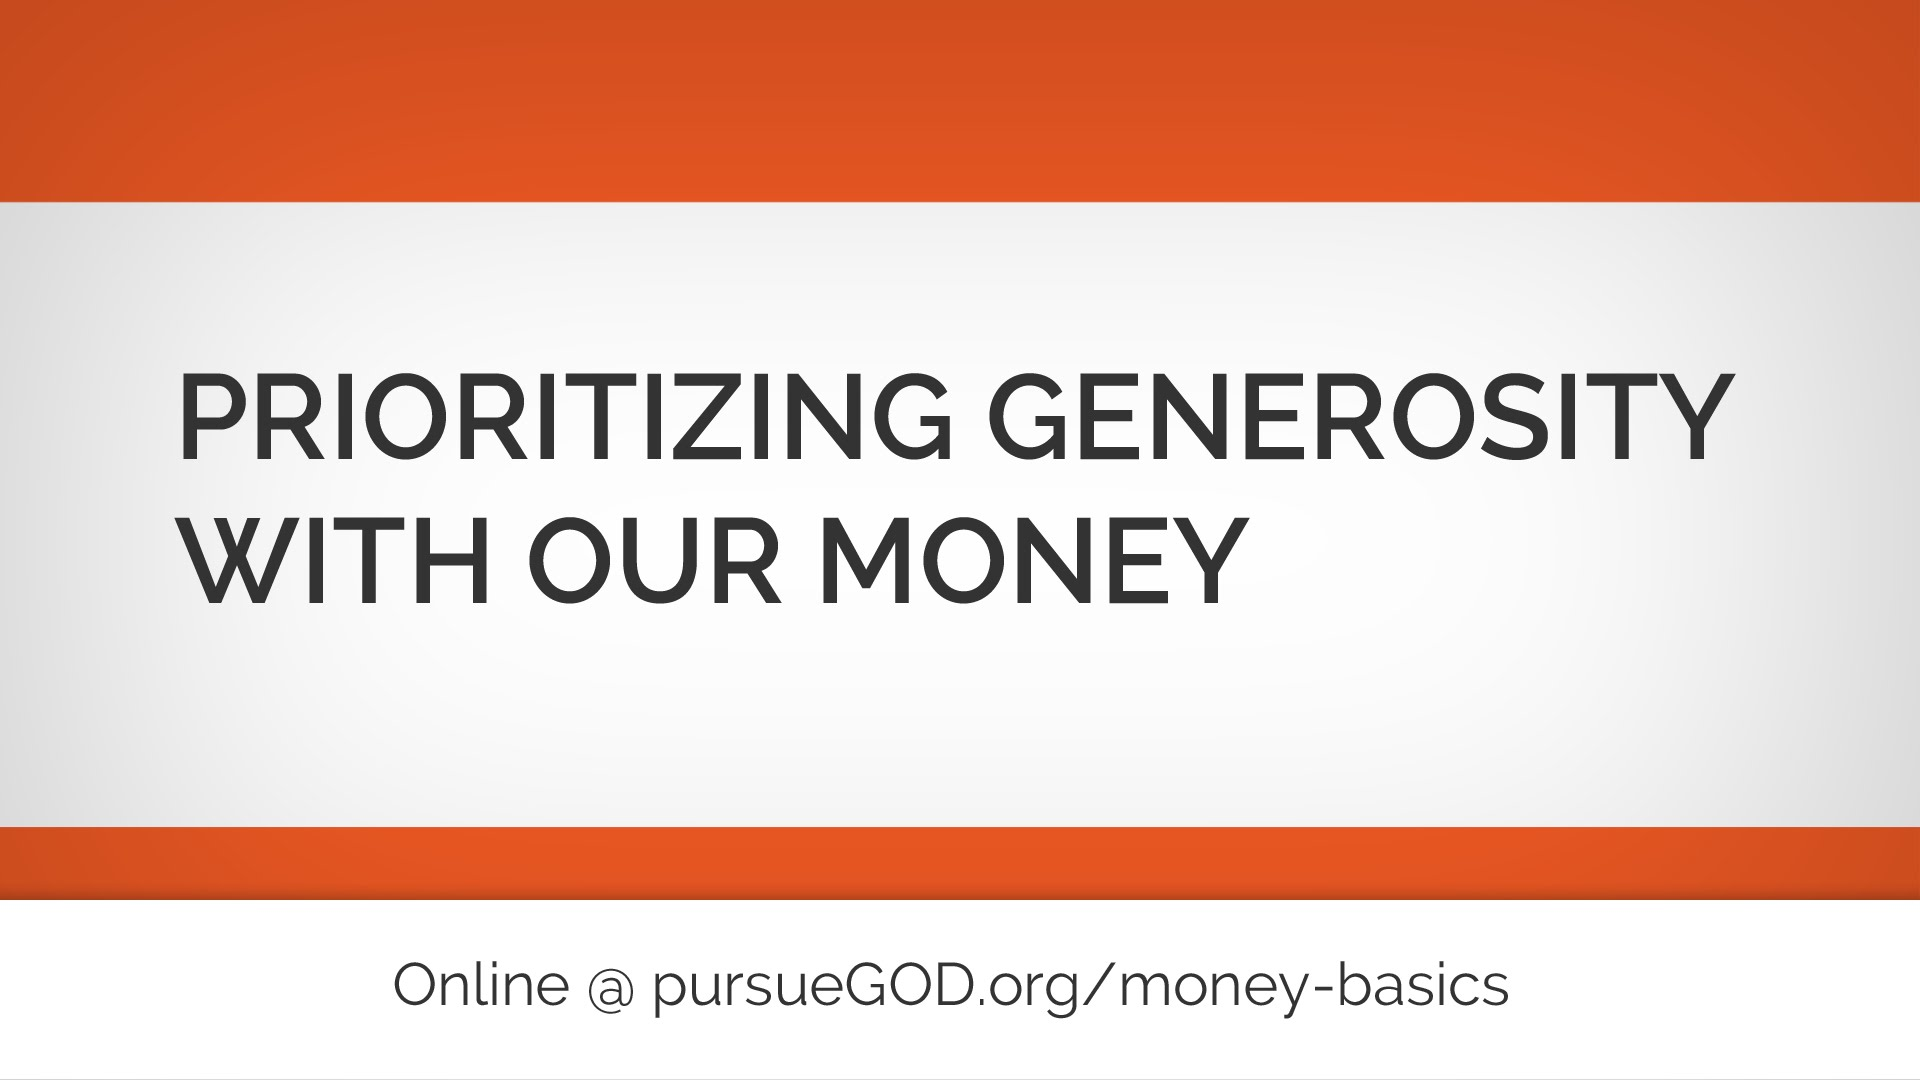 Money Basics: Prioritizing Generosity